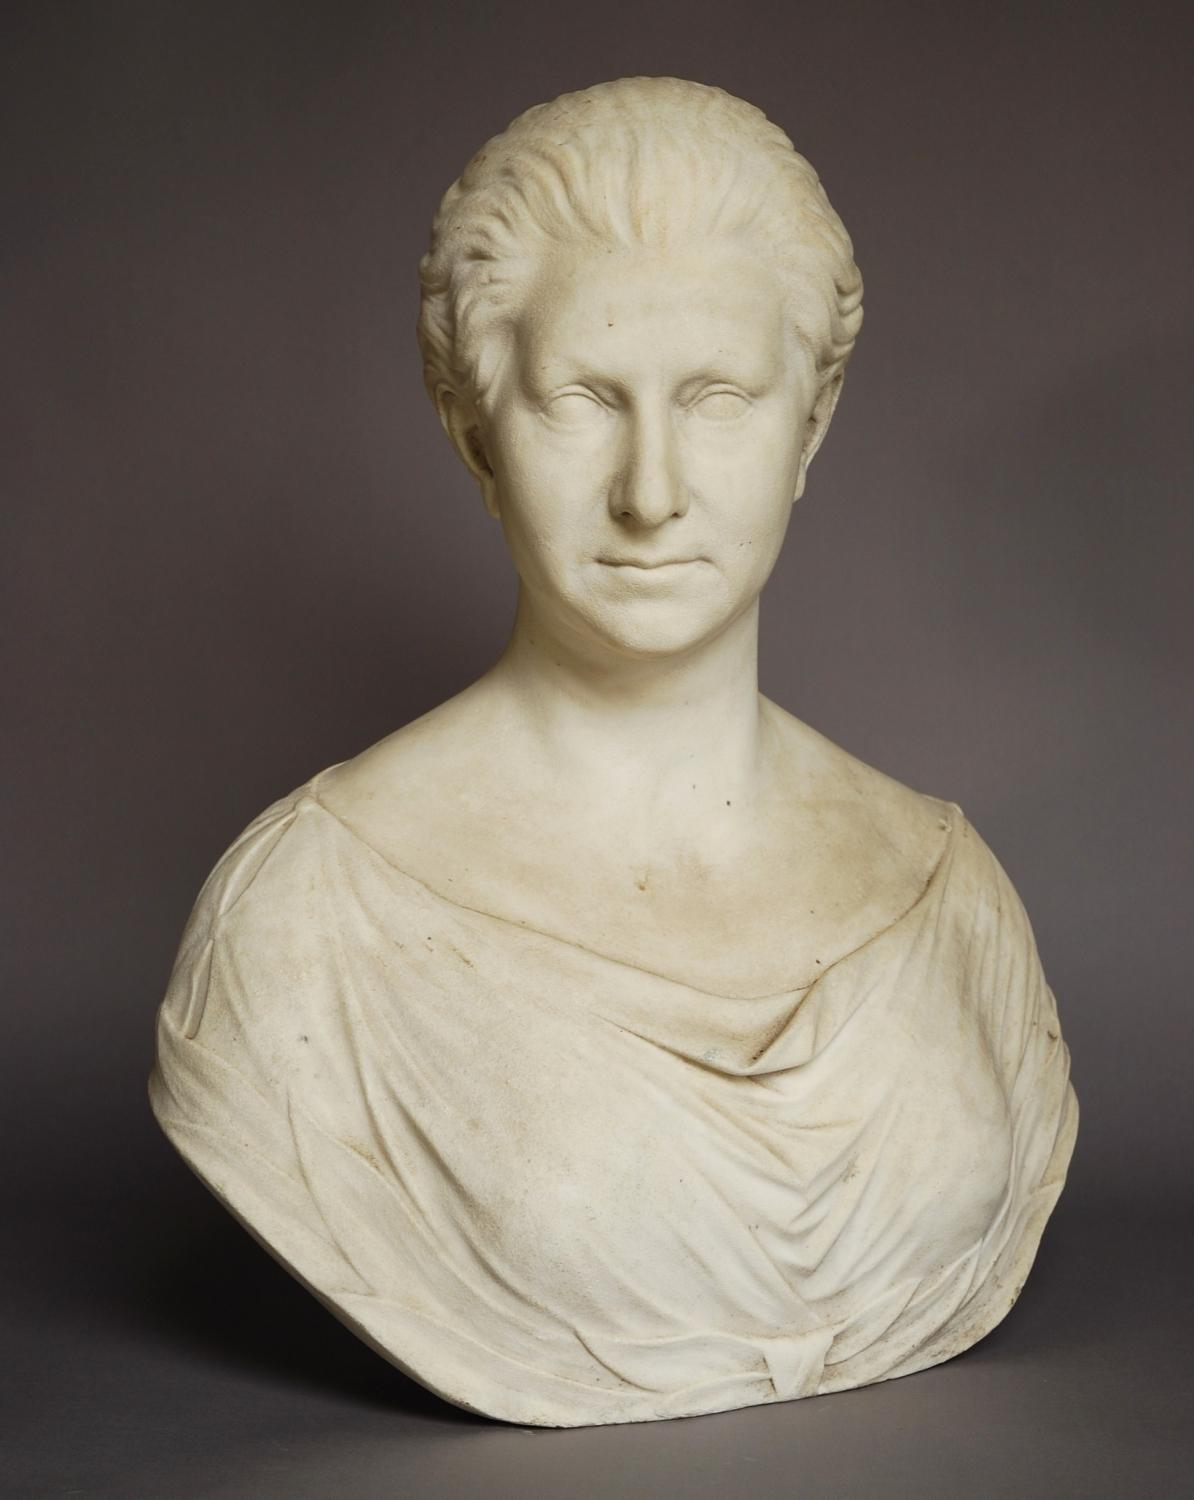 19thc marble bust of Queen Victoria